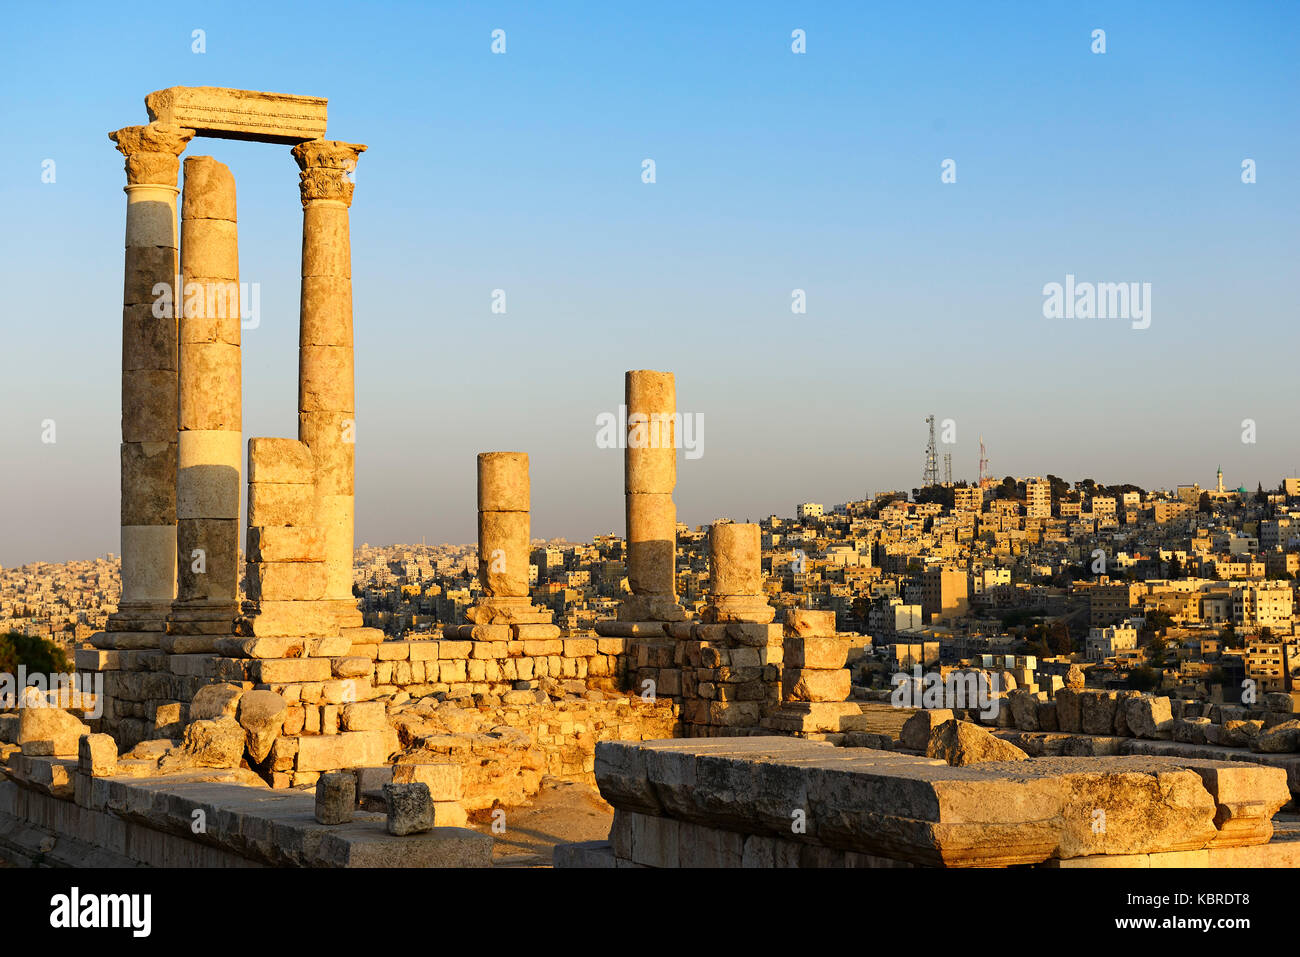 Ancienne capitale romaine, Philadelphie, Temple of Hercules à la citadelle, Amman, Jordanie Photo Stock